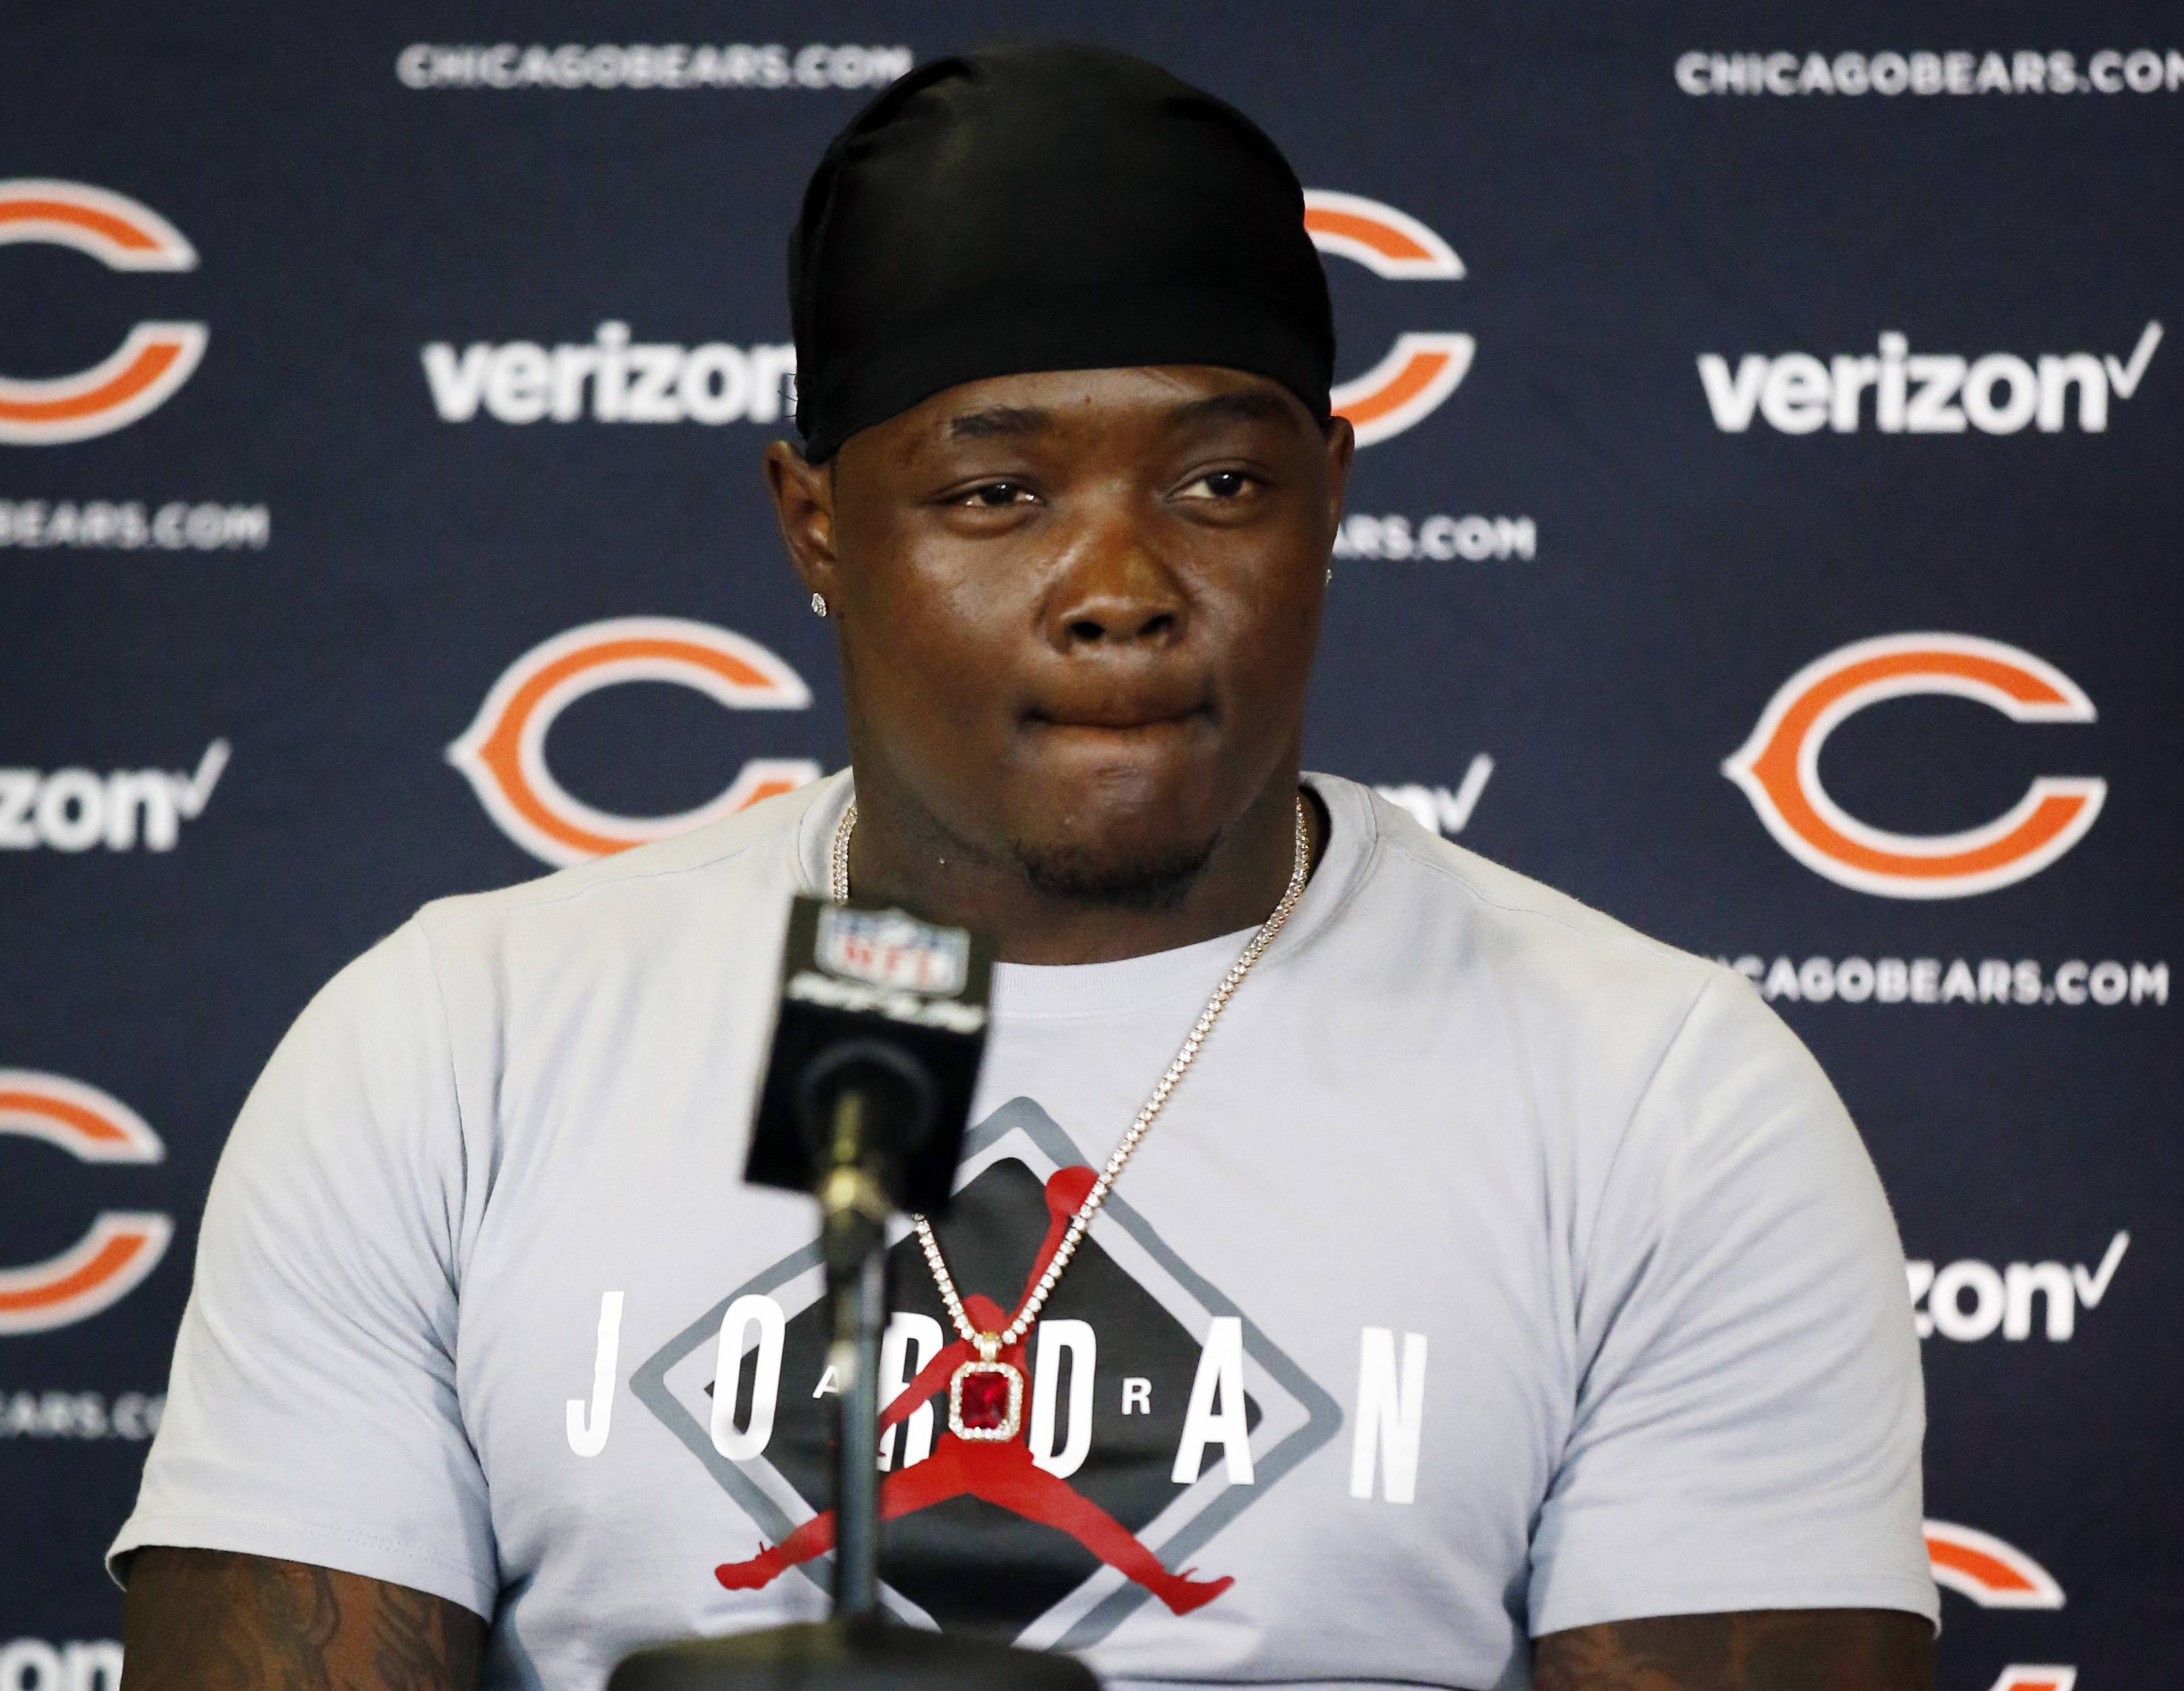 Bears' Trevathan ready to bounce back from rough preseason